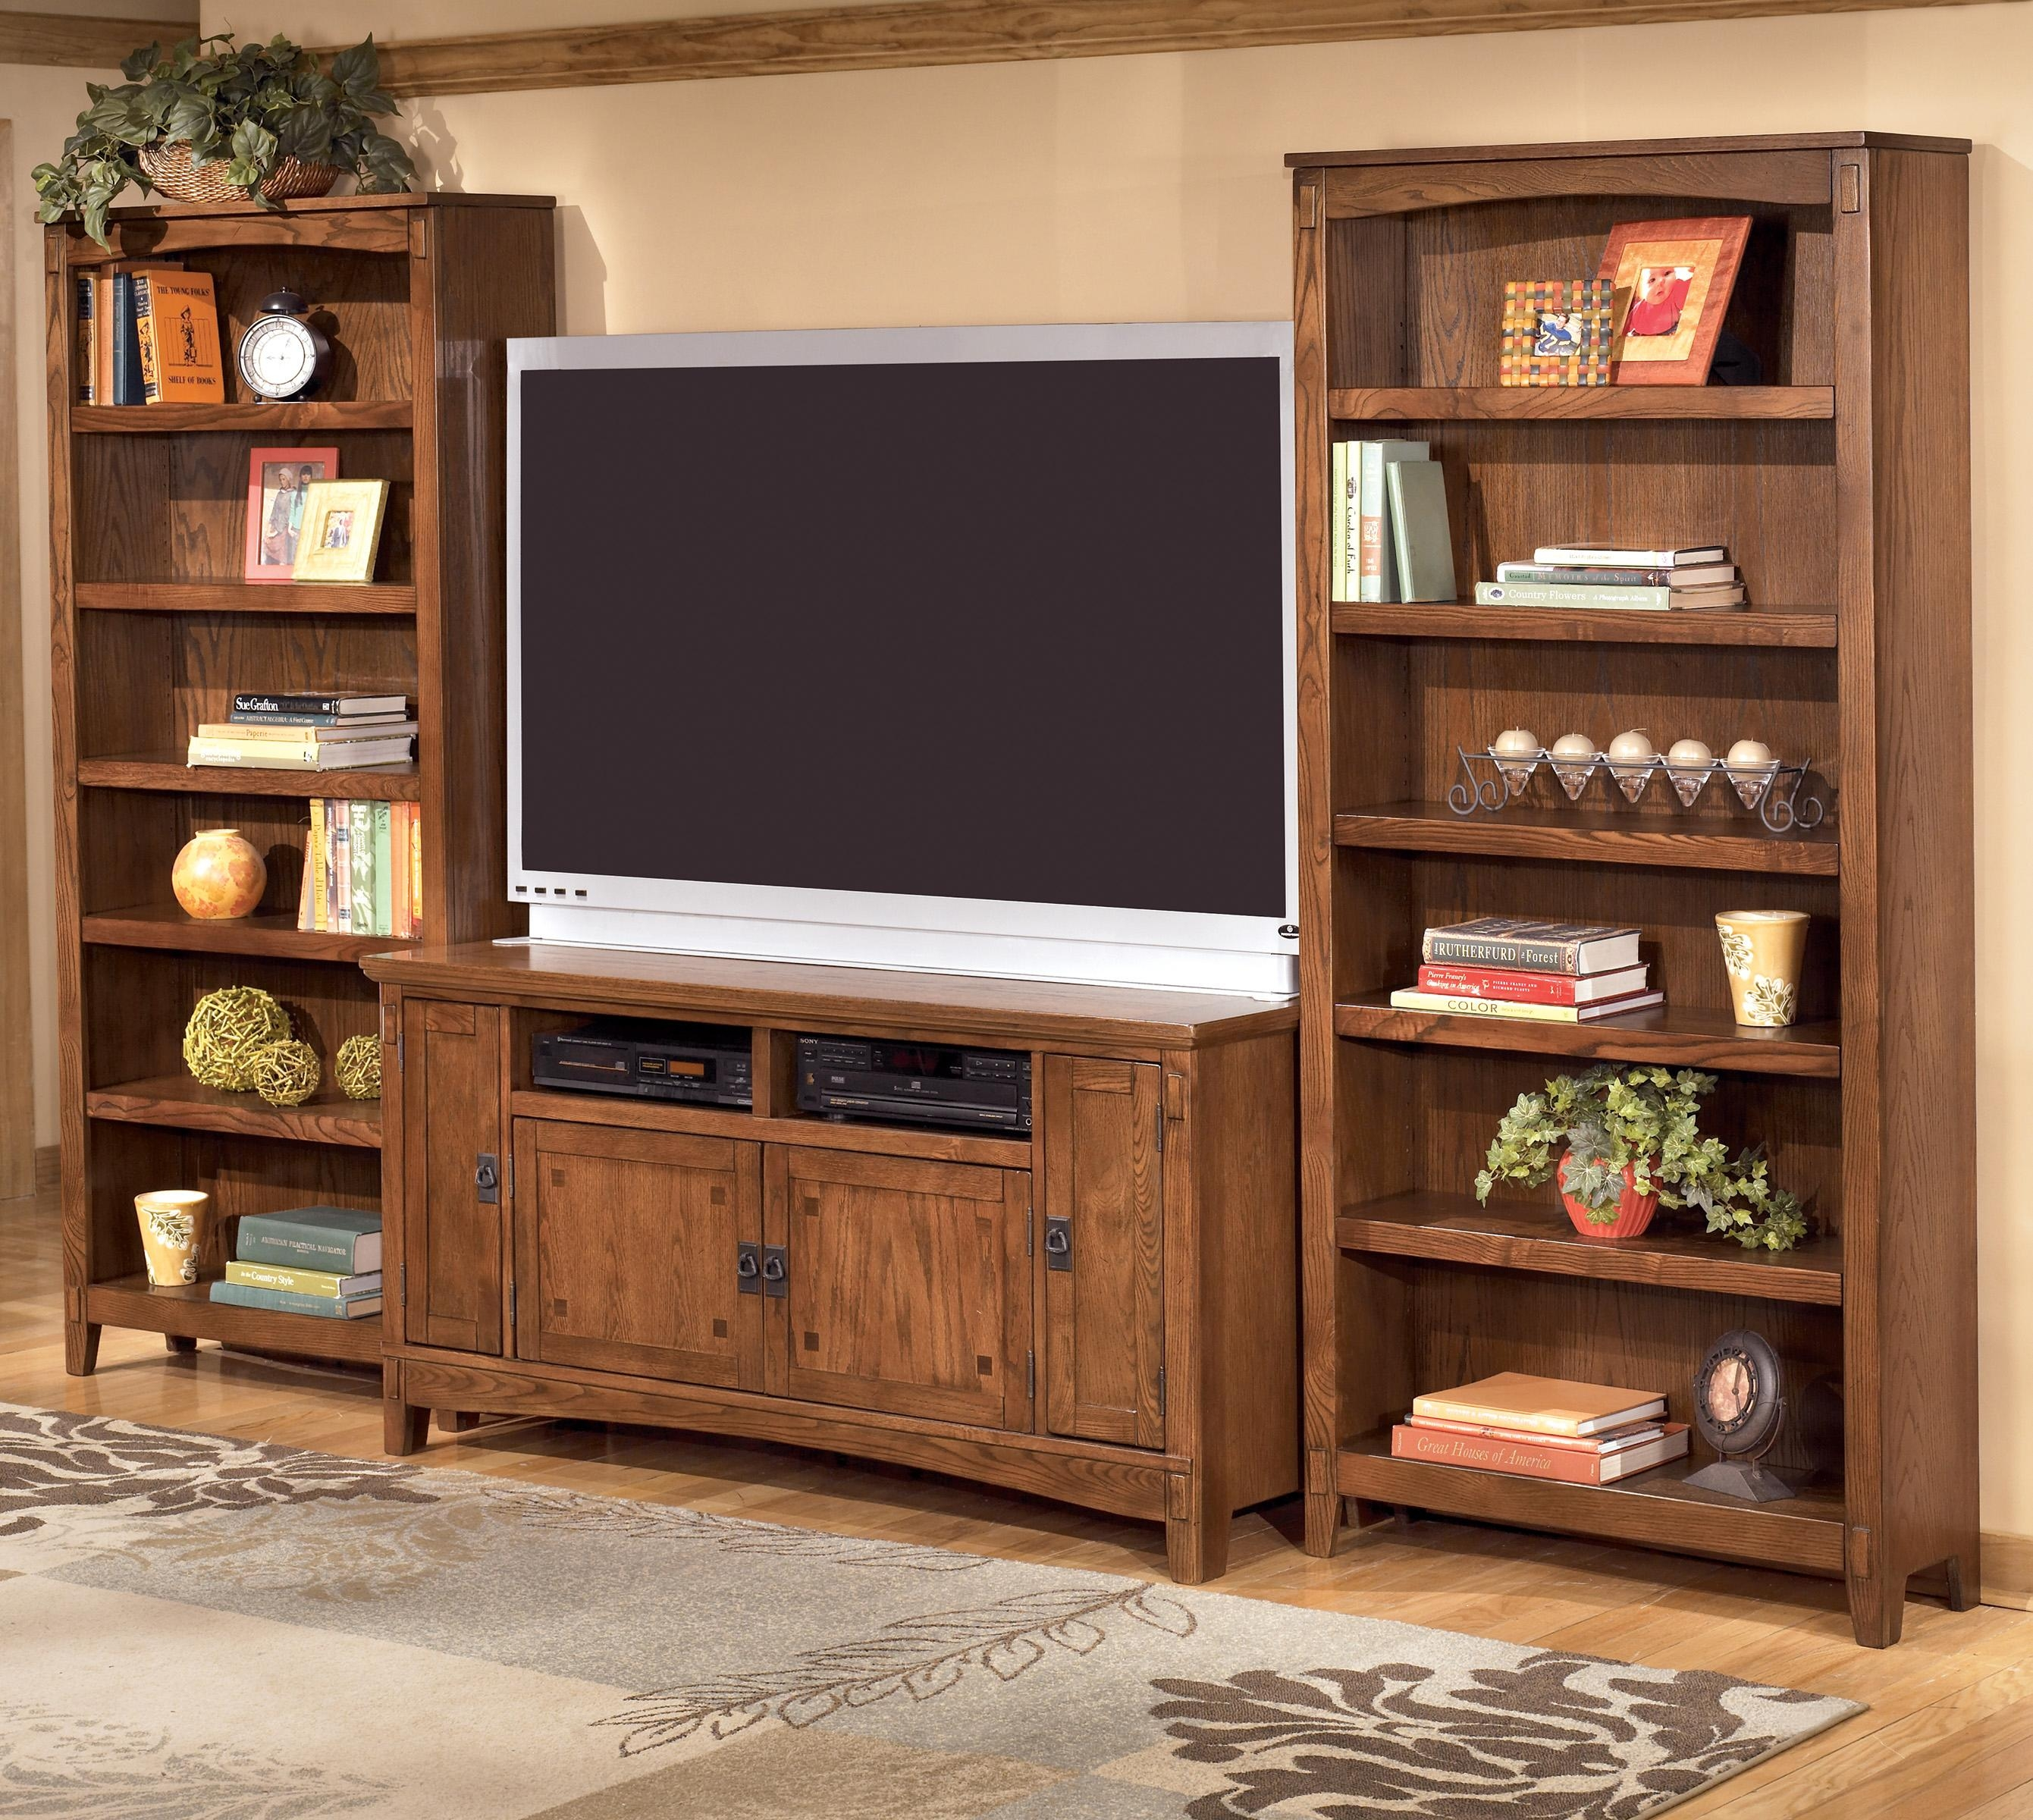 Ashley Furniture Cross Island 60 Inch Tv Stand 2 Large Bookcases Inside Bookcase Tv Stand (#2 of 15)